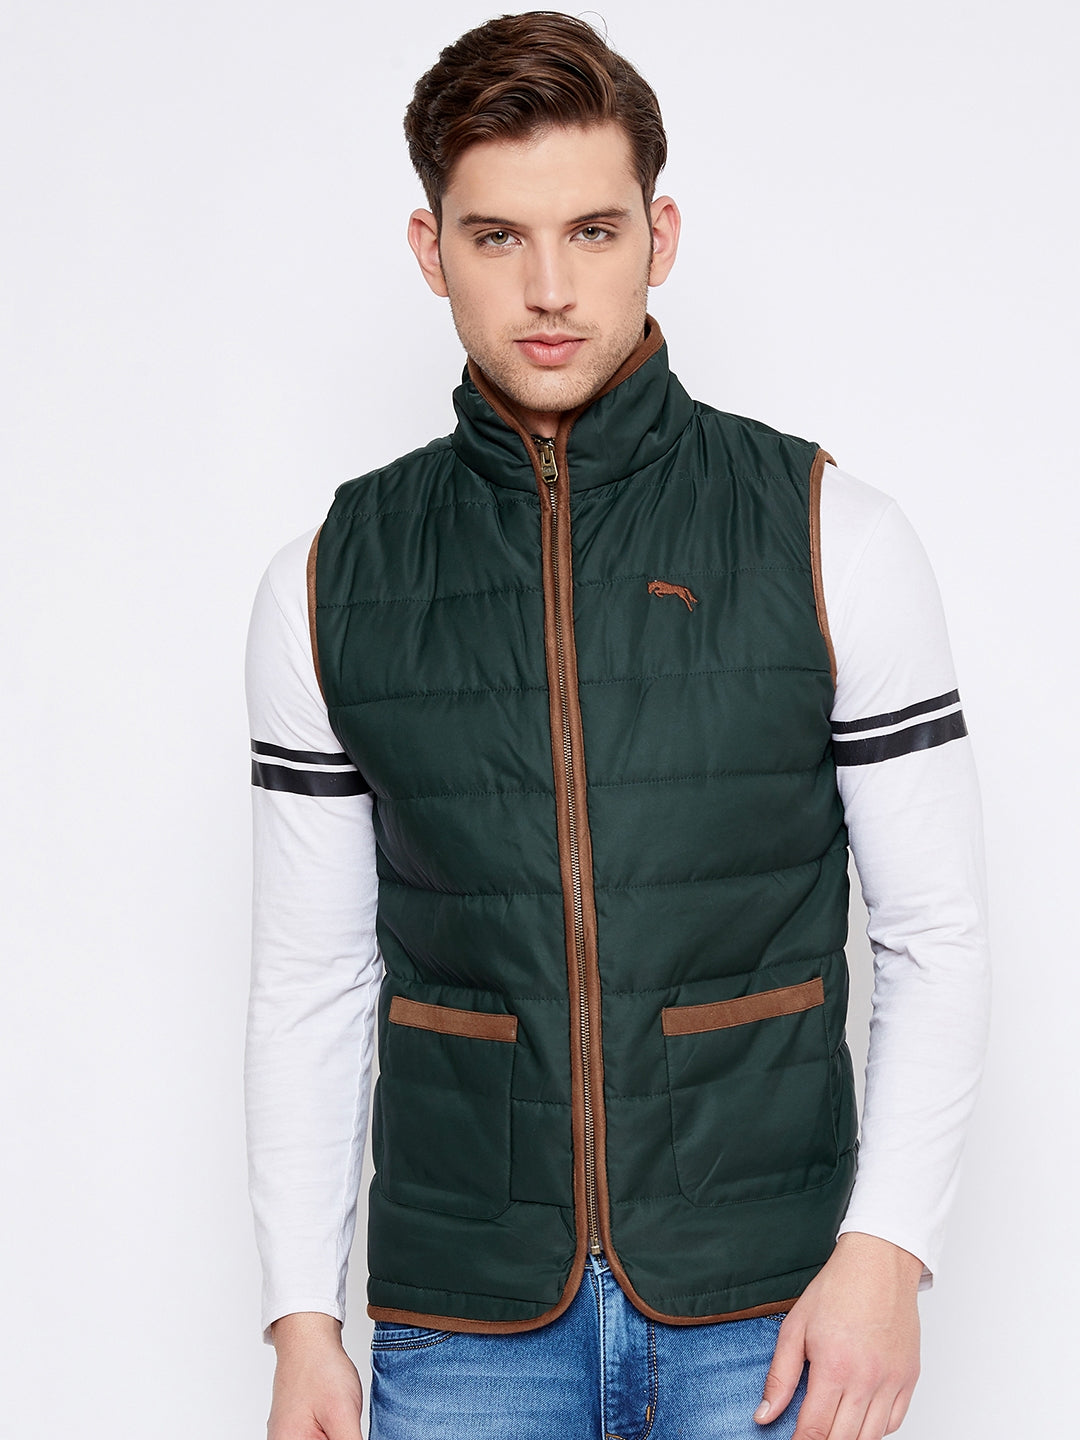 JUMP USA Men Green Sleeveless Padded Jacket